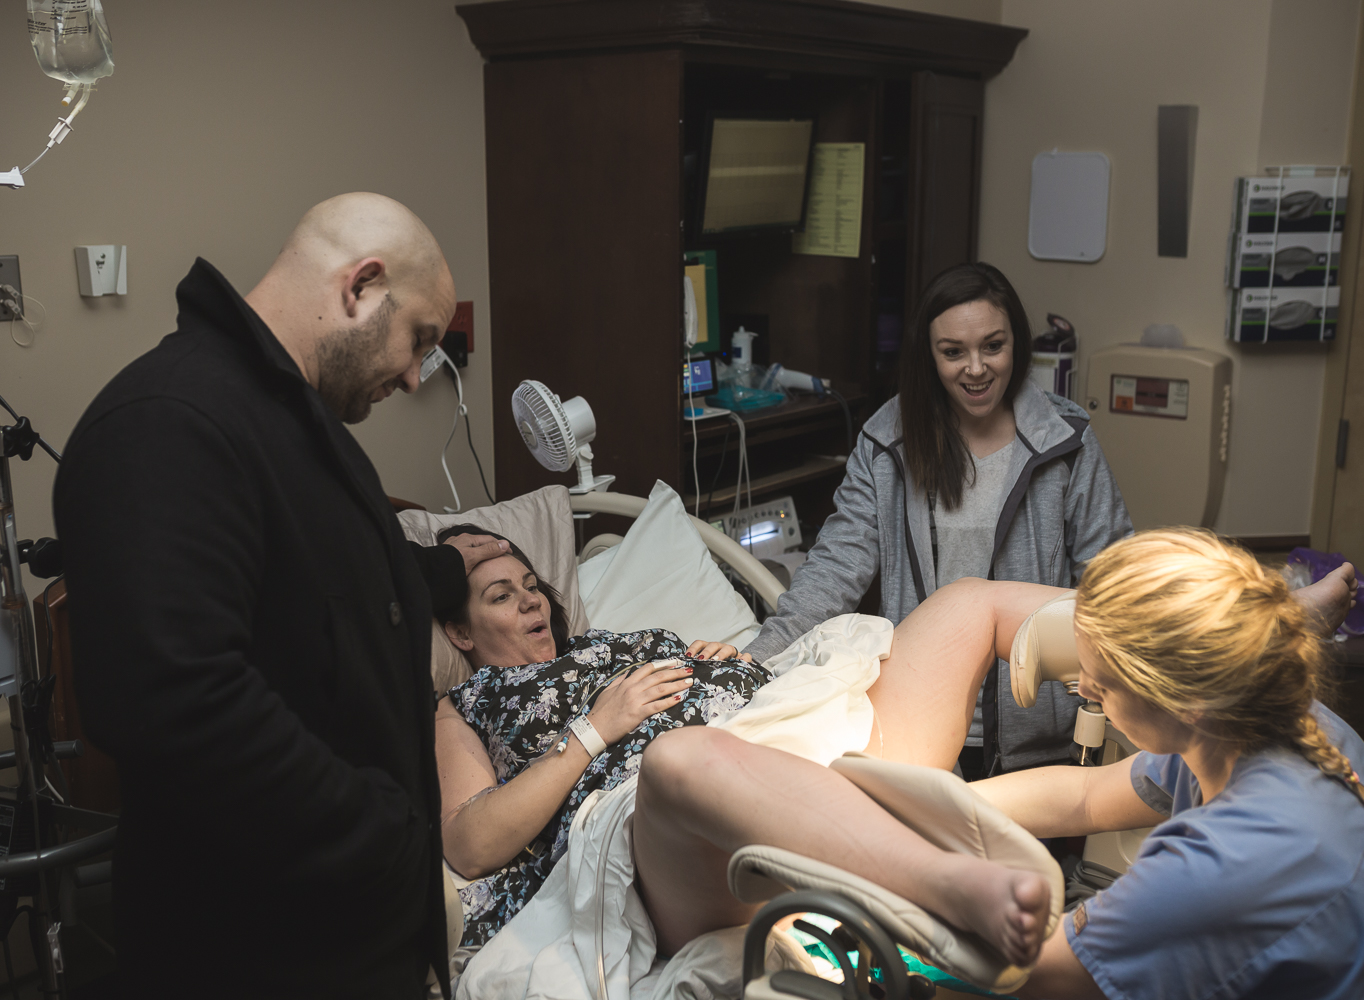 Oklahoma Birth Photographer captures fun moment from birth with Birth Doula